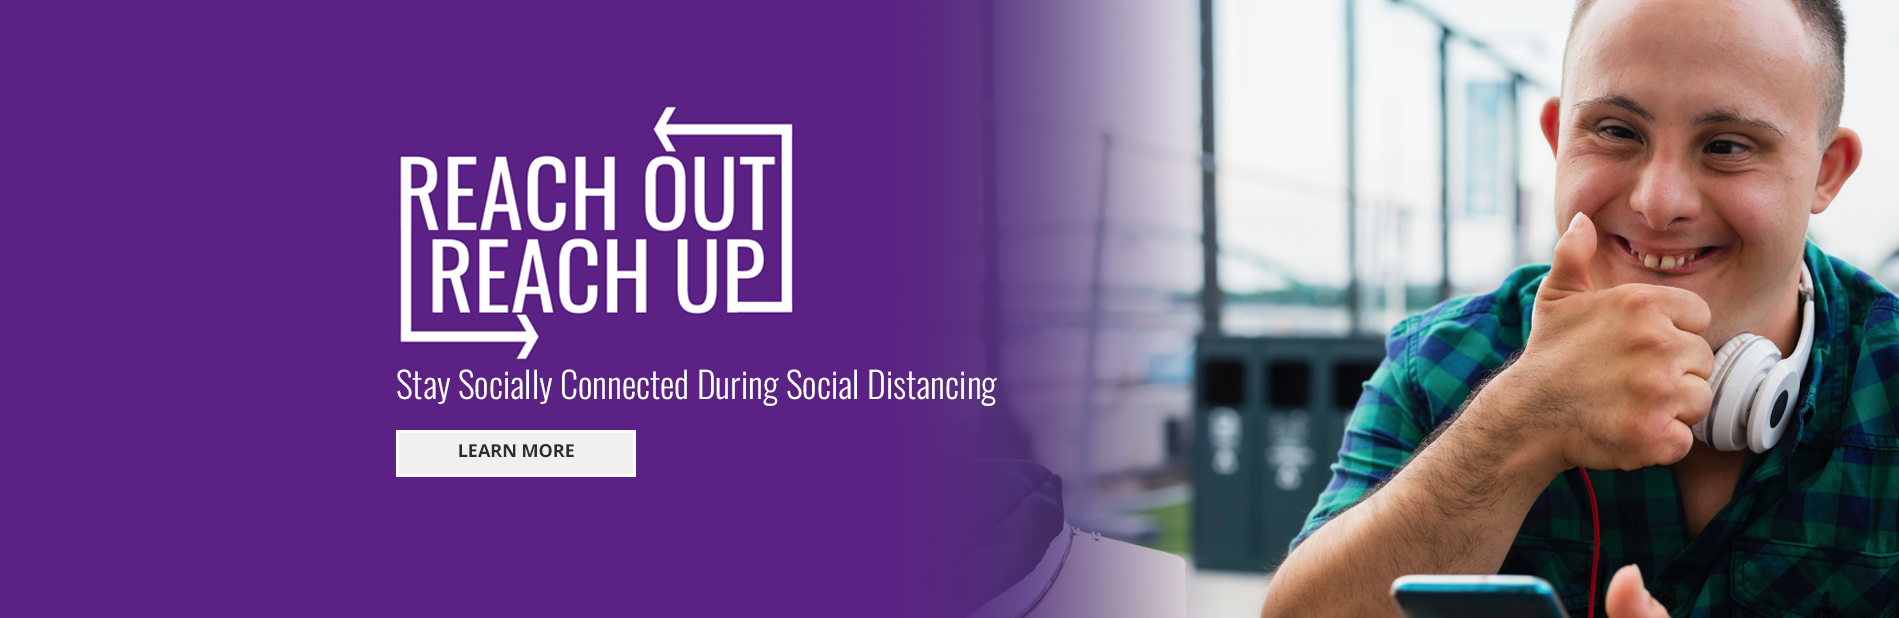 Reach Out Reach Up - Stay Socially Connected During Social Distancing - Learn More